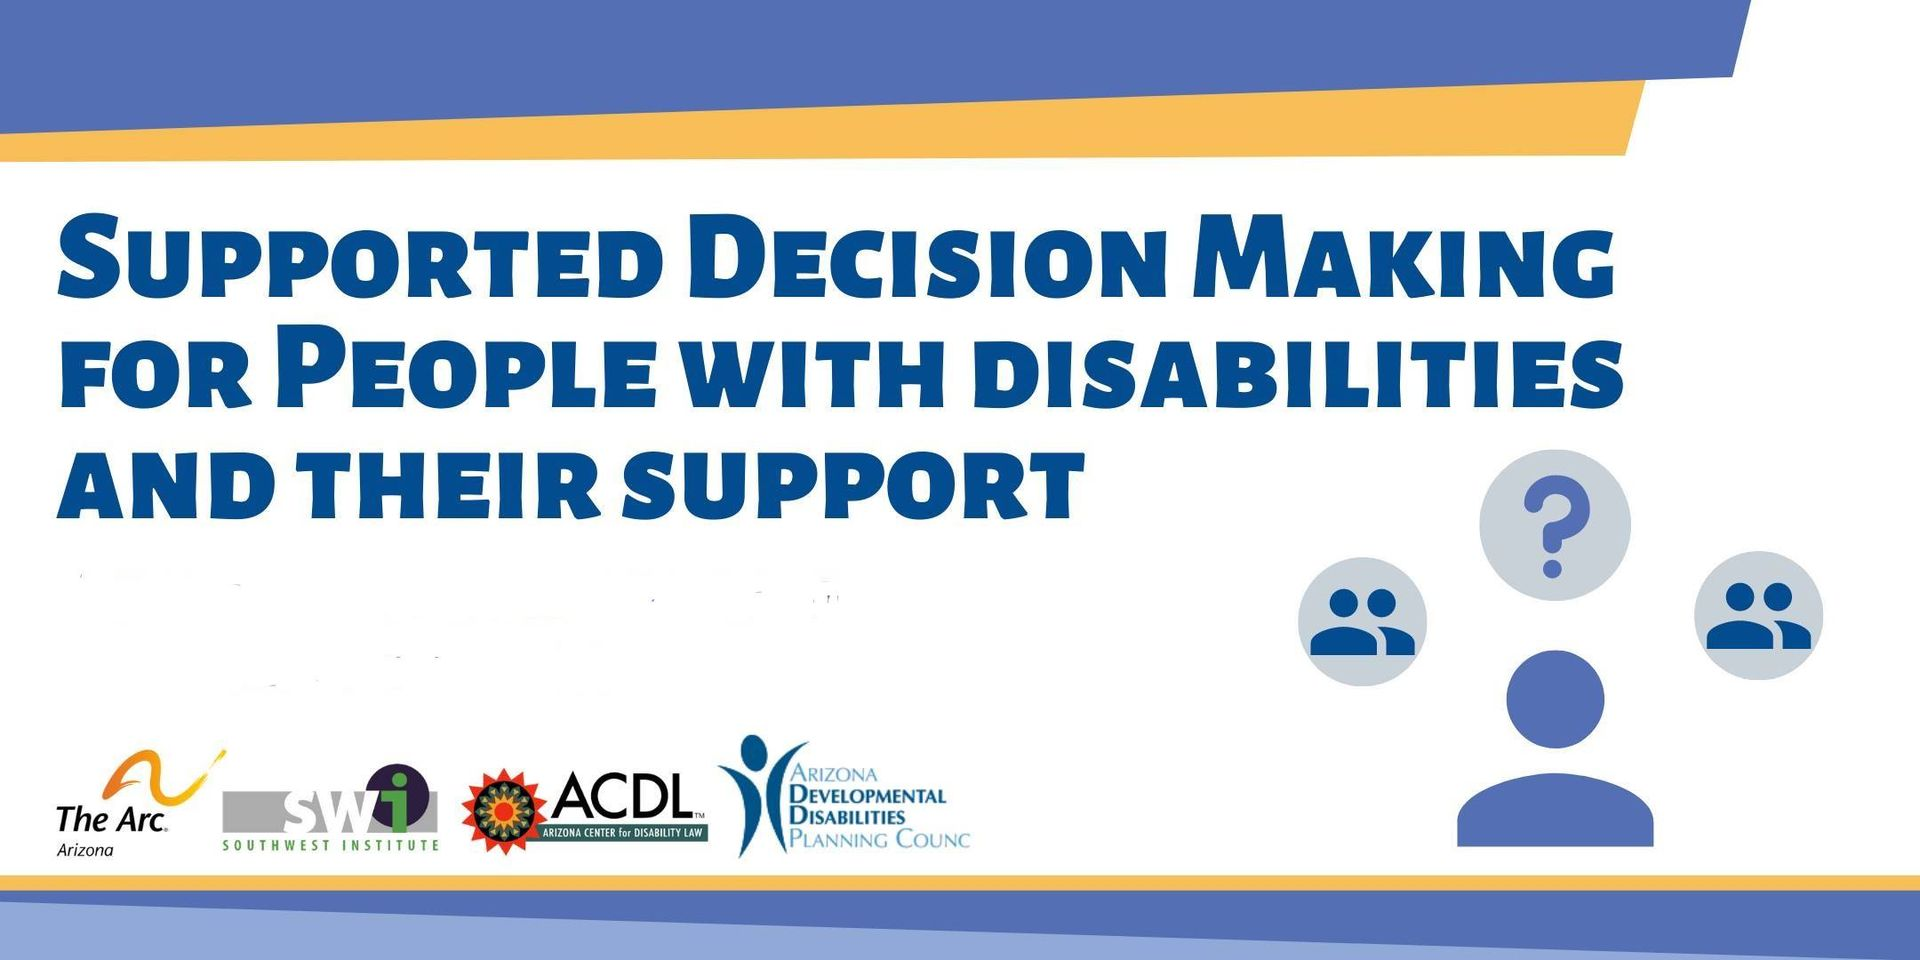 Supported decision-making for people with disabilities and their supports